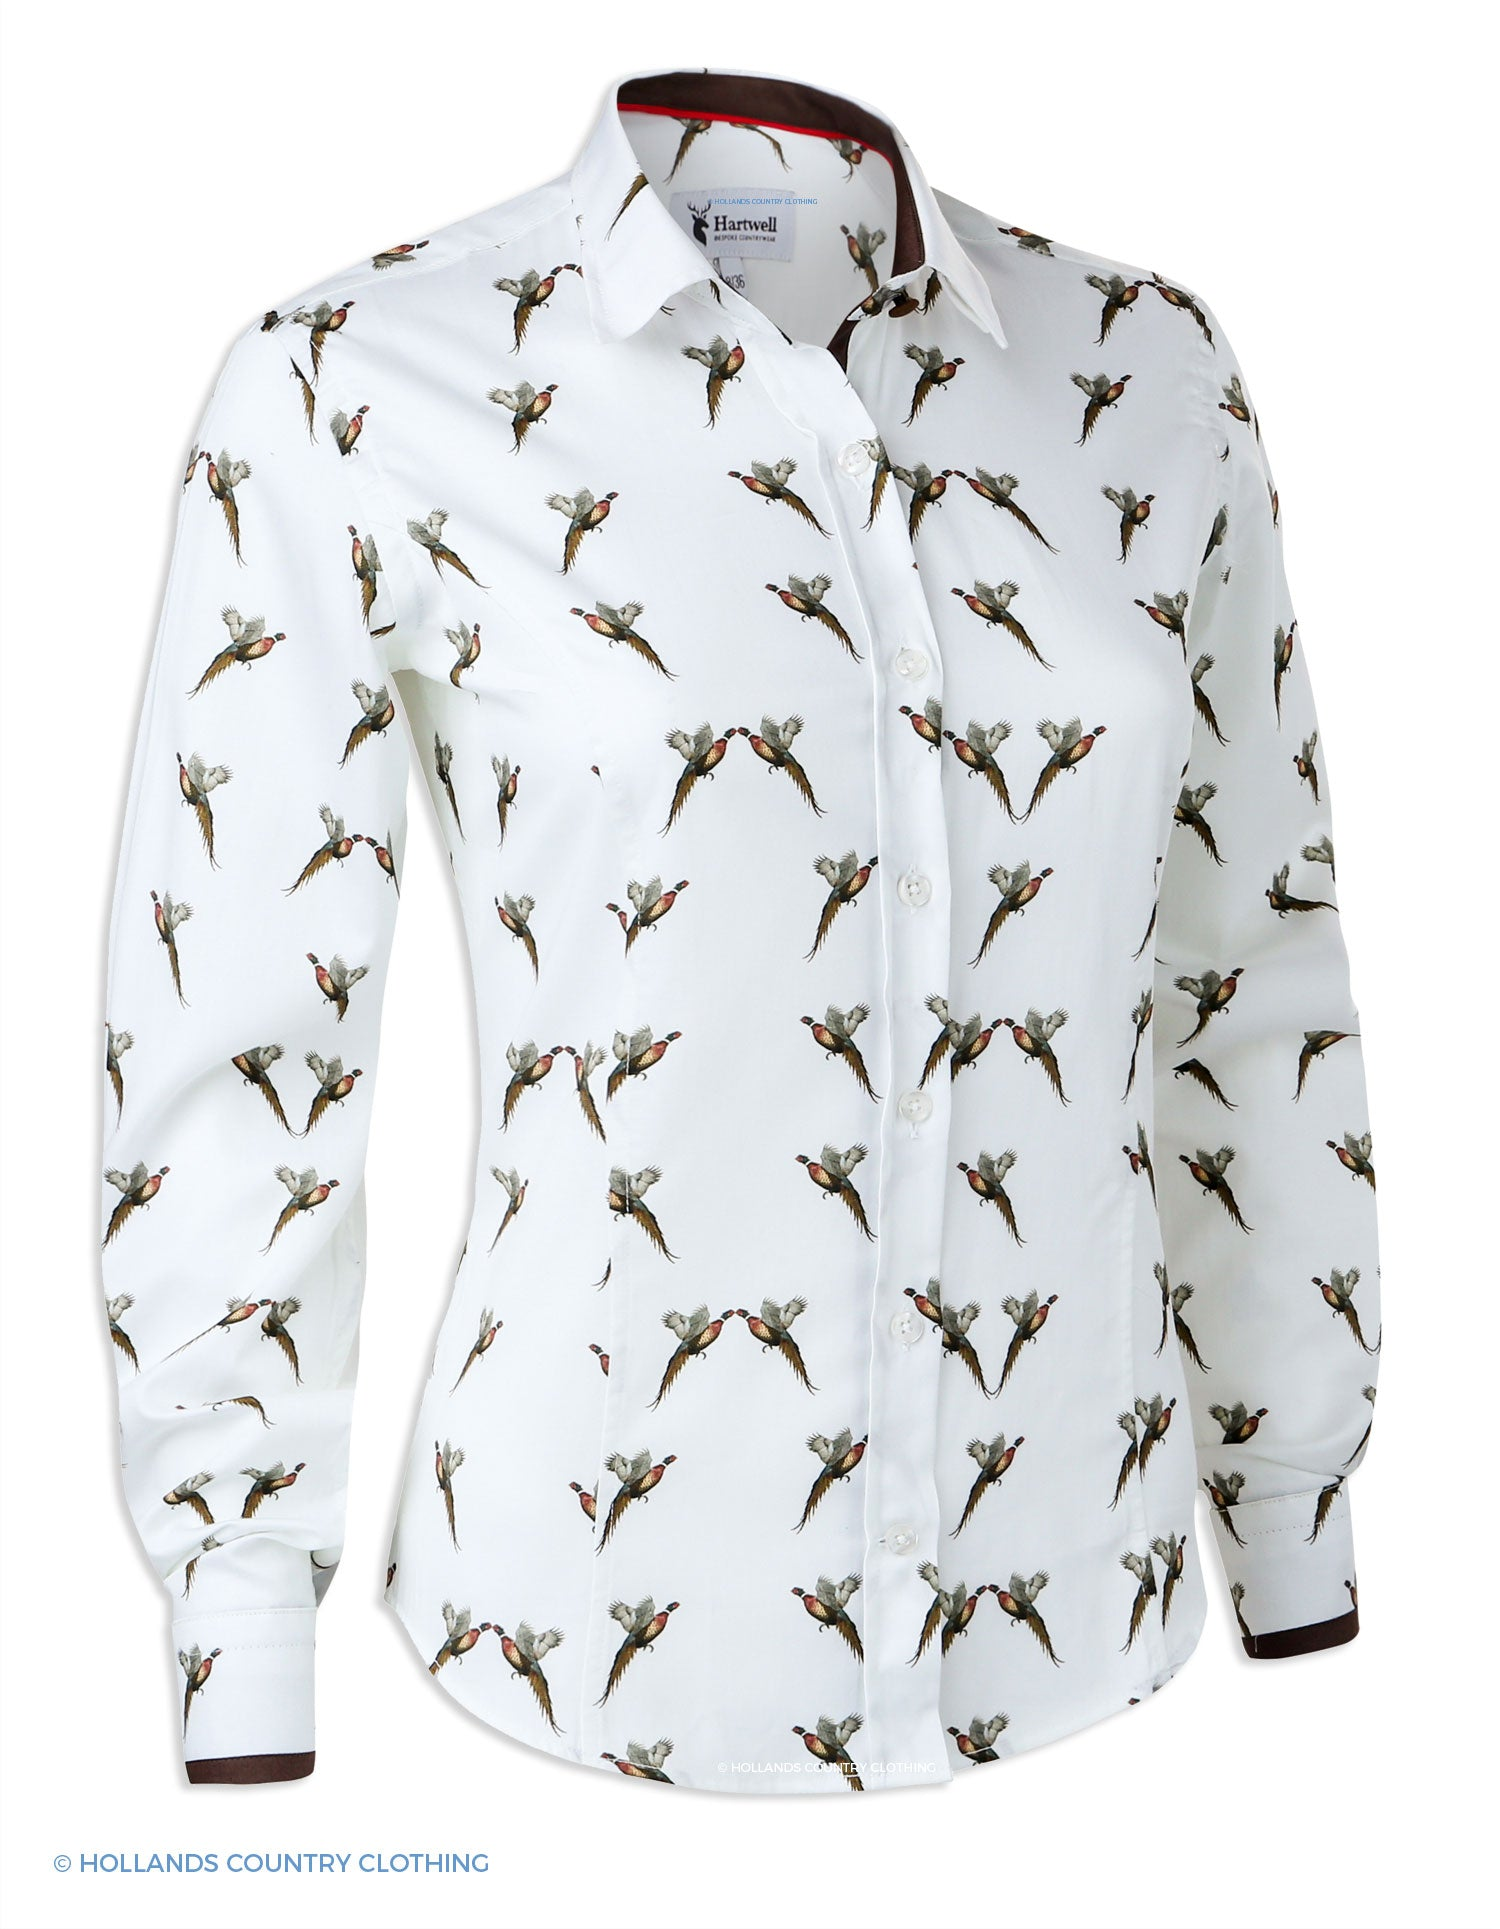 Hartwell Layla Cotton Shirt | Flying Pheasants with white background